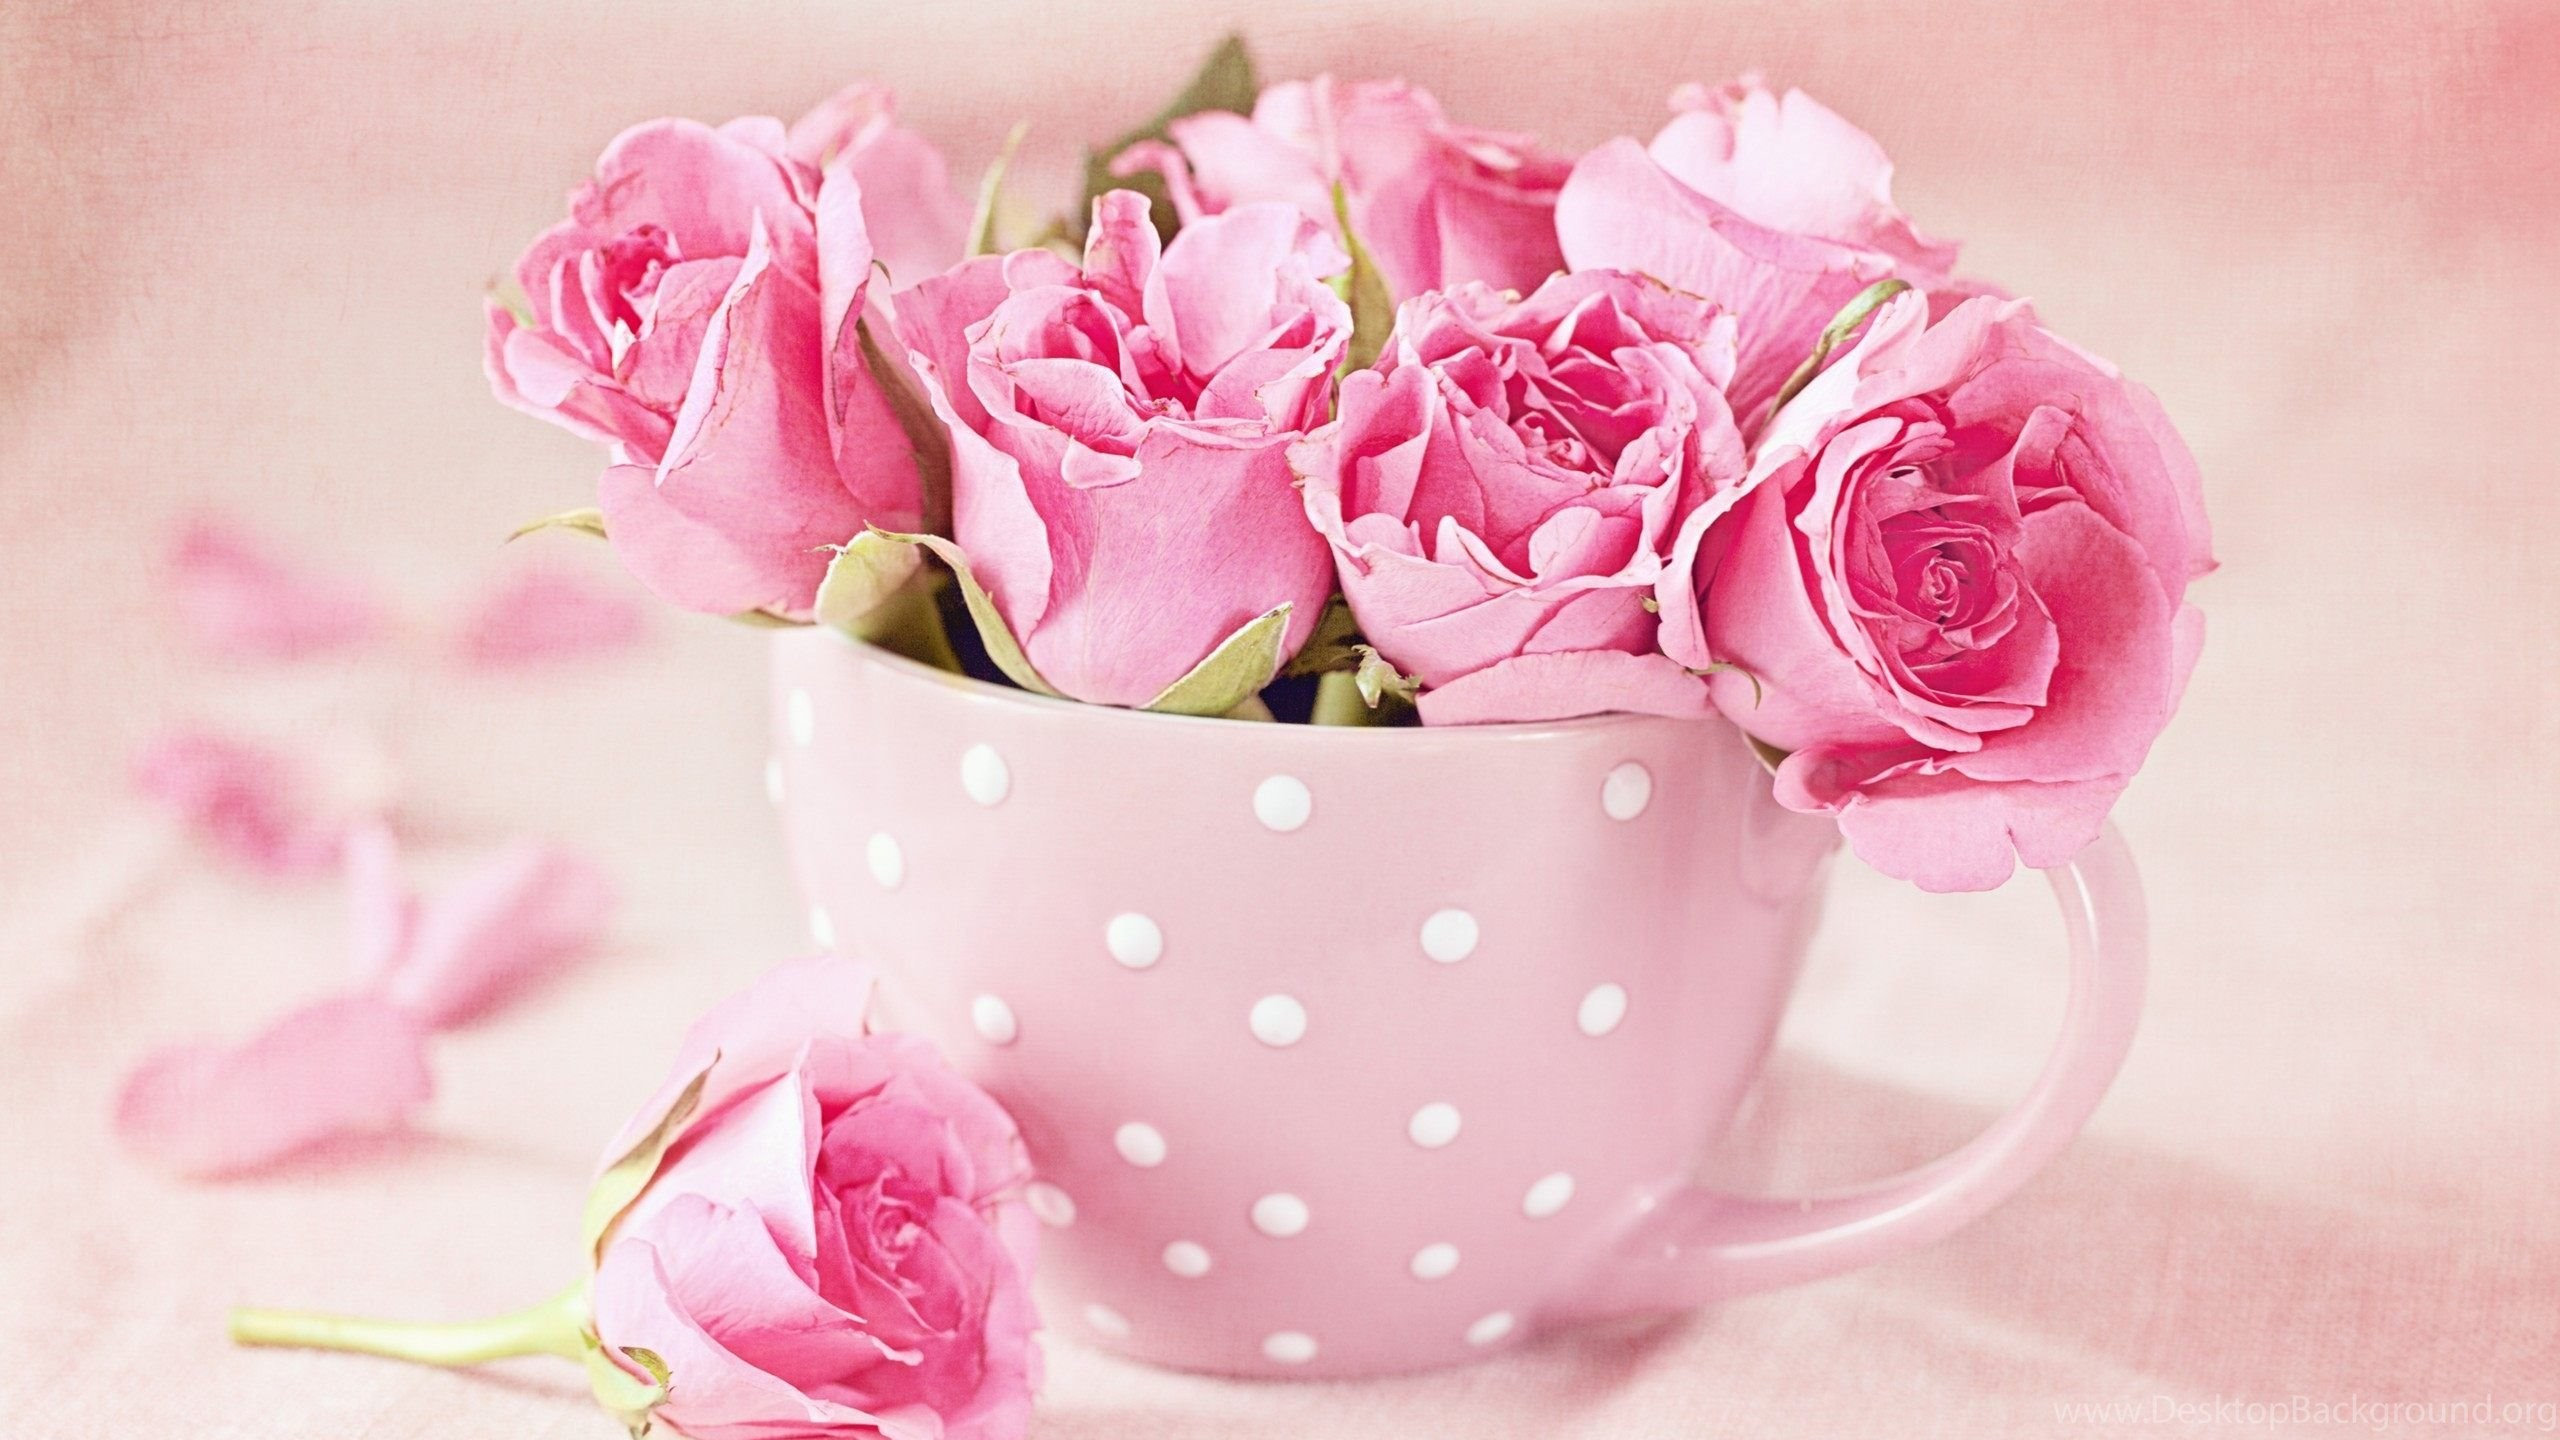 pink roses wallpapers hd download of beautiful roses desktop background